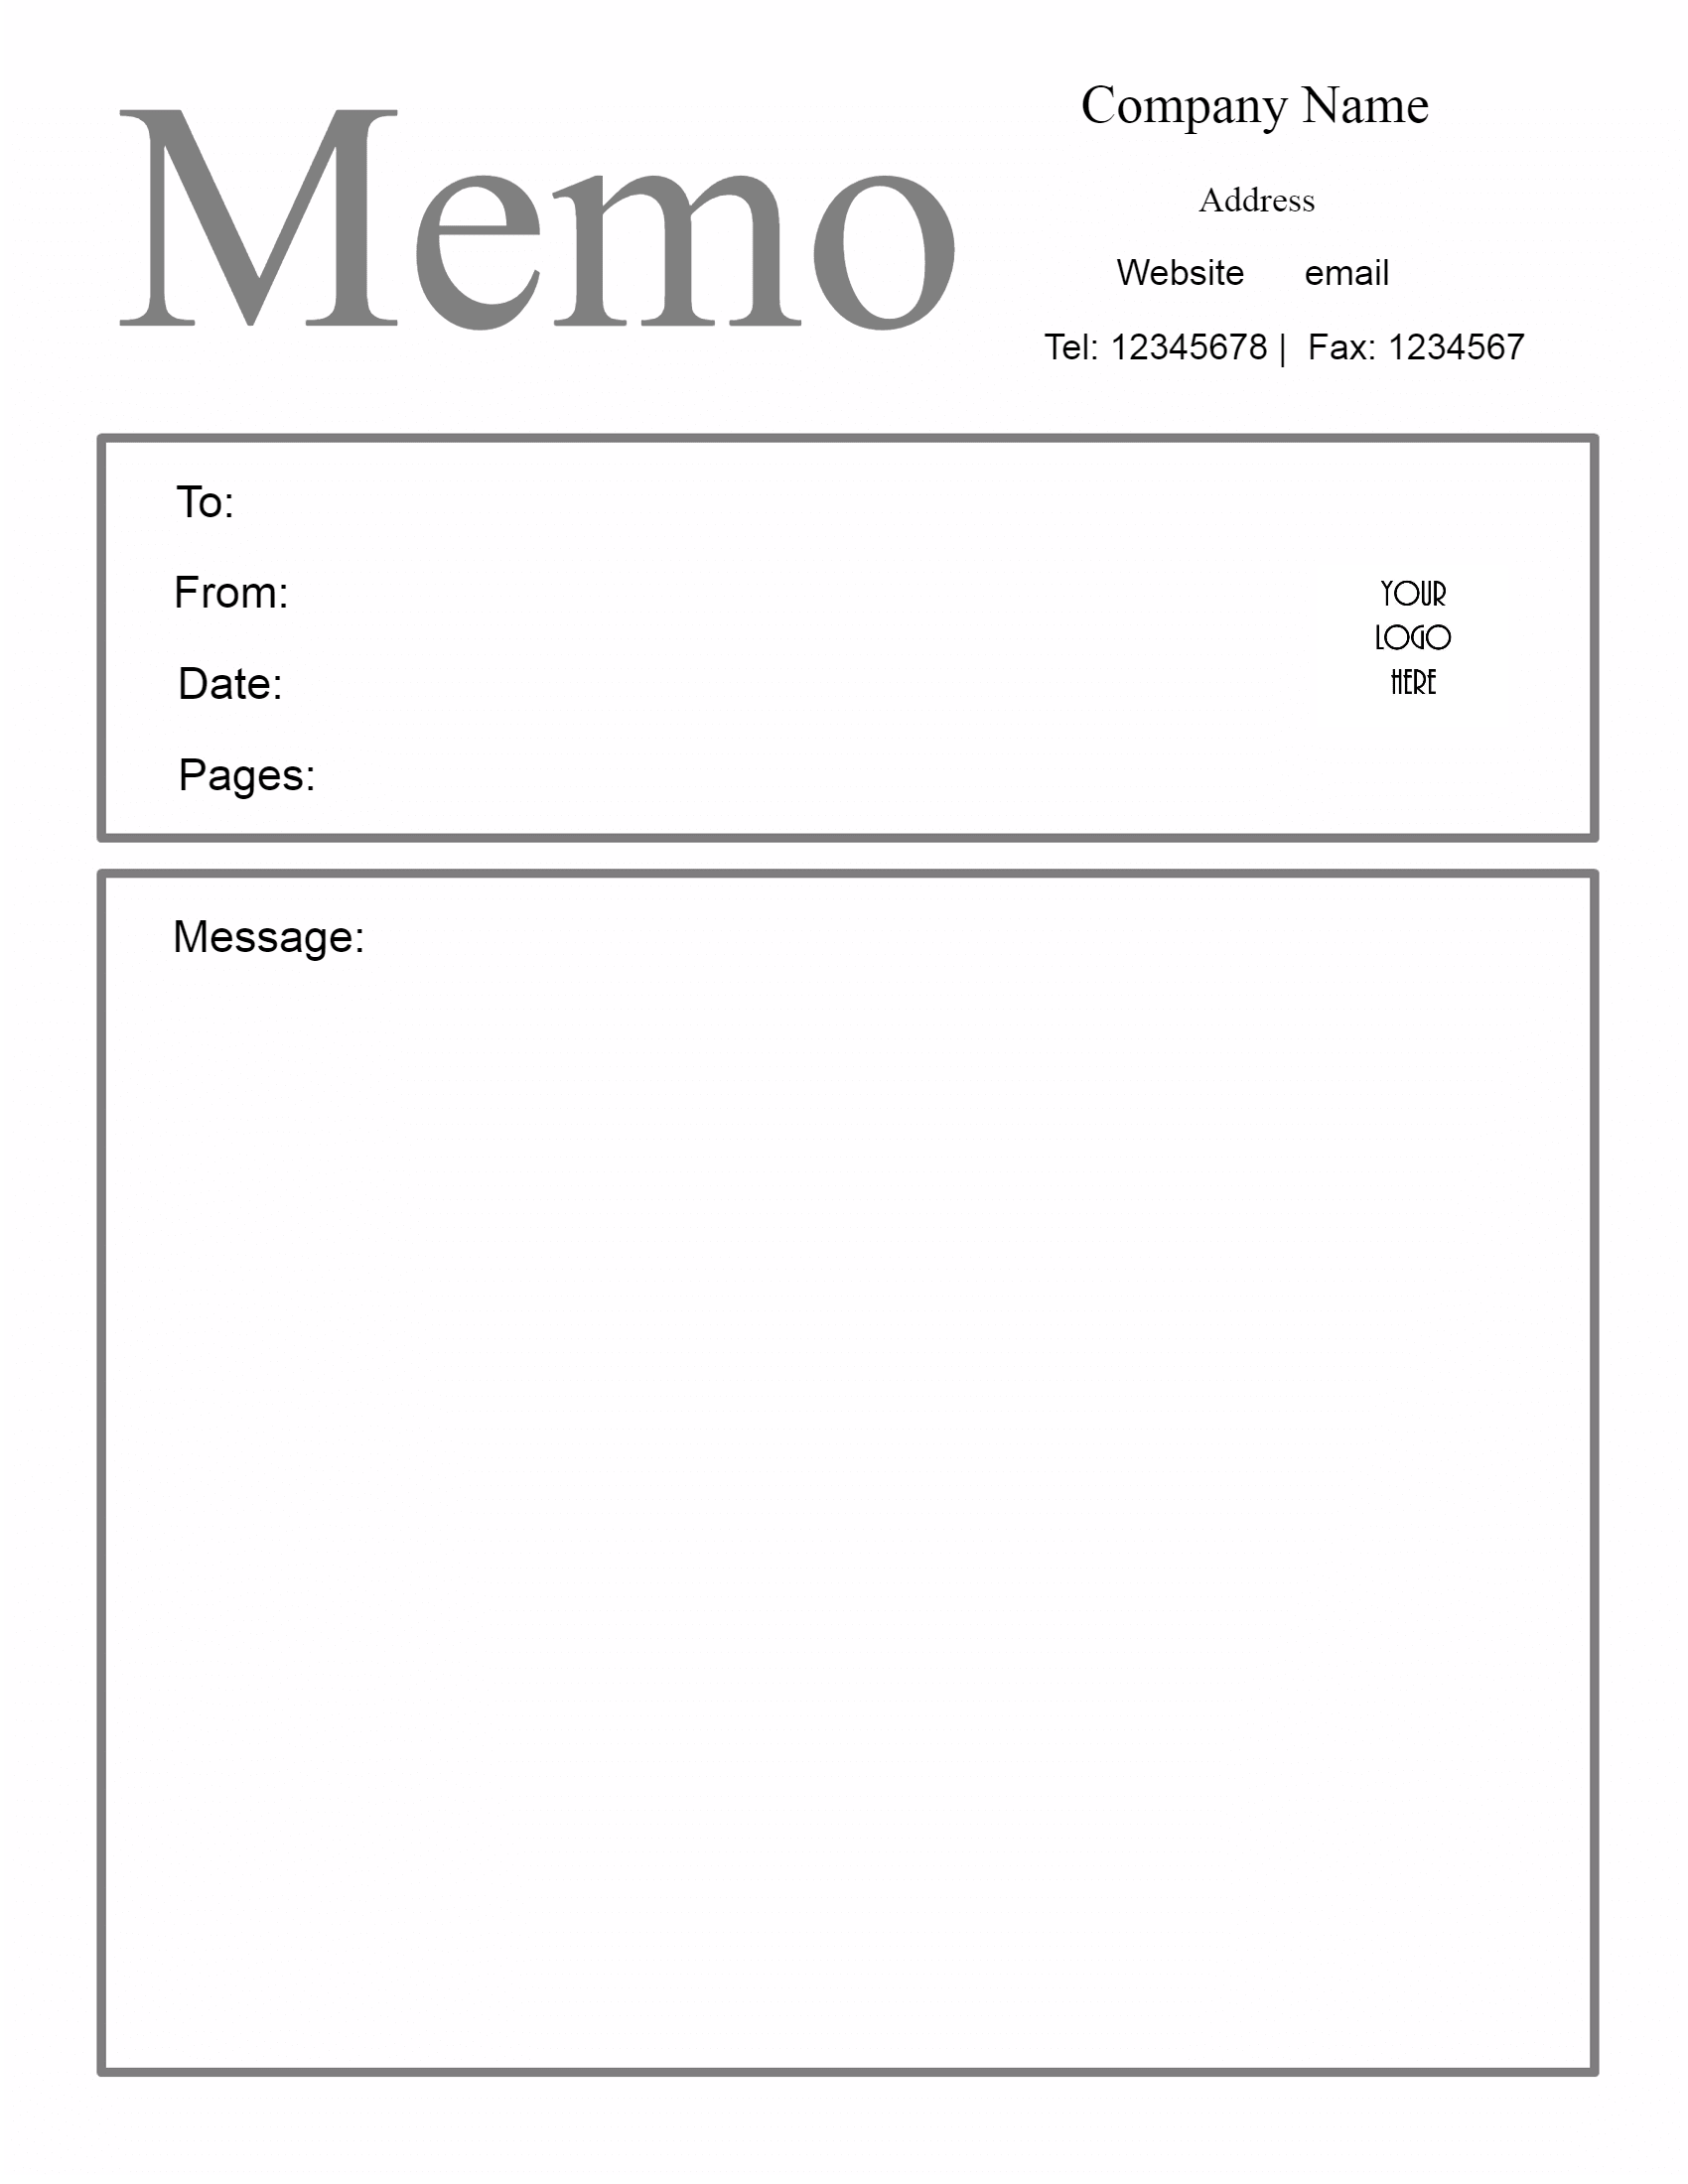 Free Letterhead Templates Free Microsoft Word Memo Template